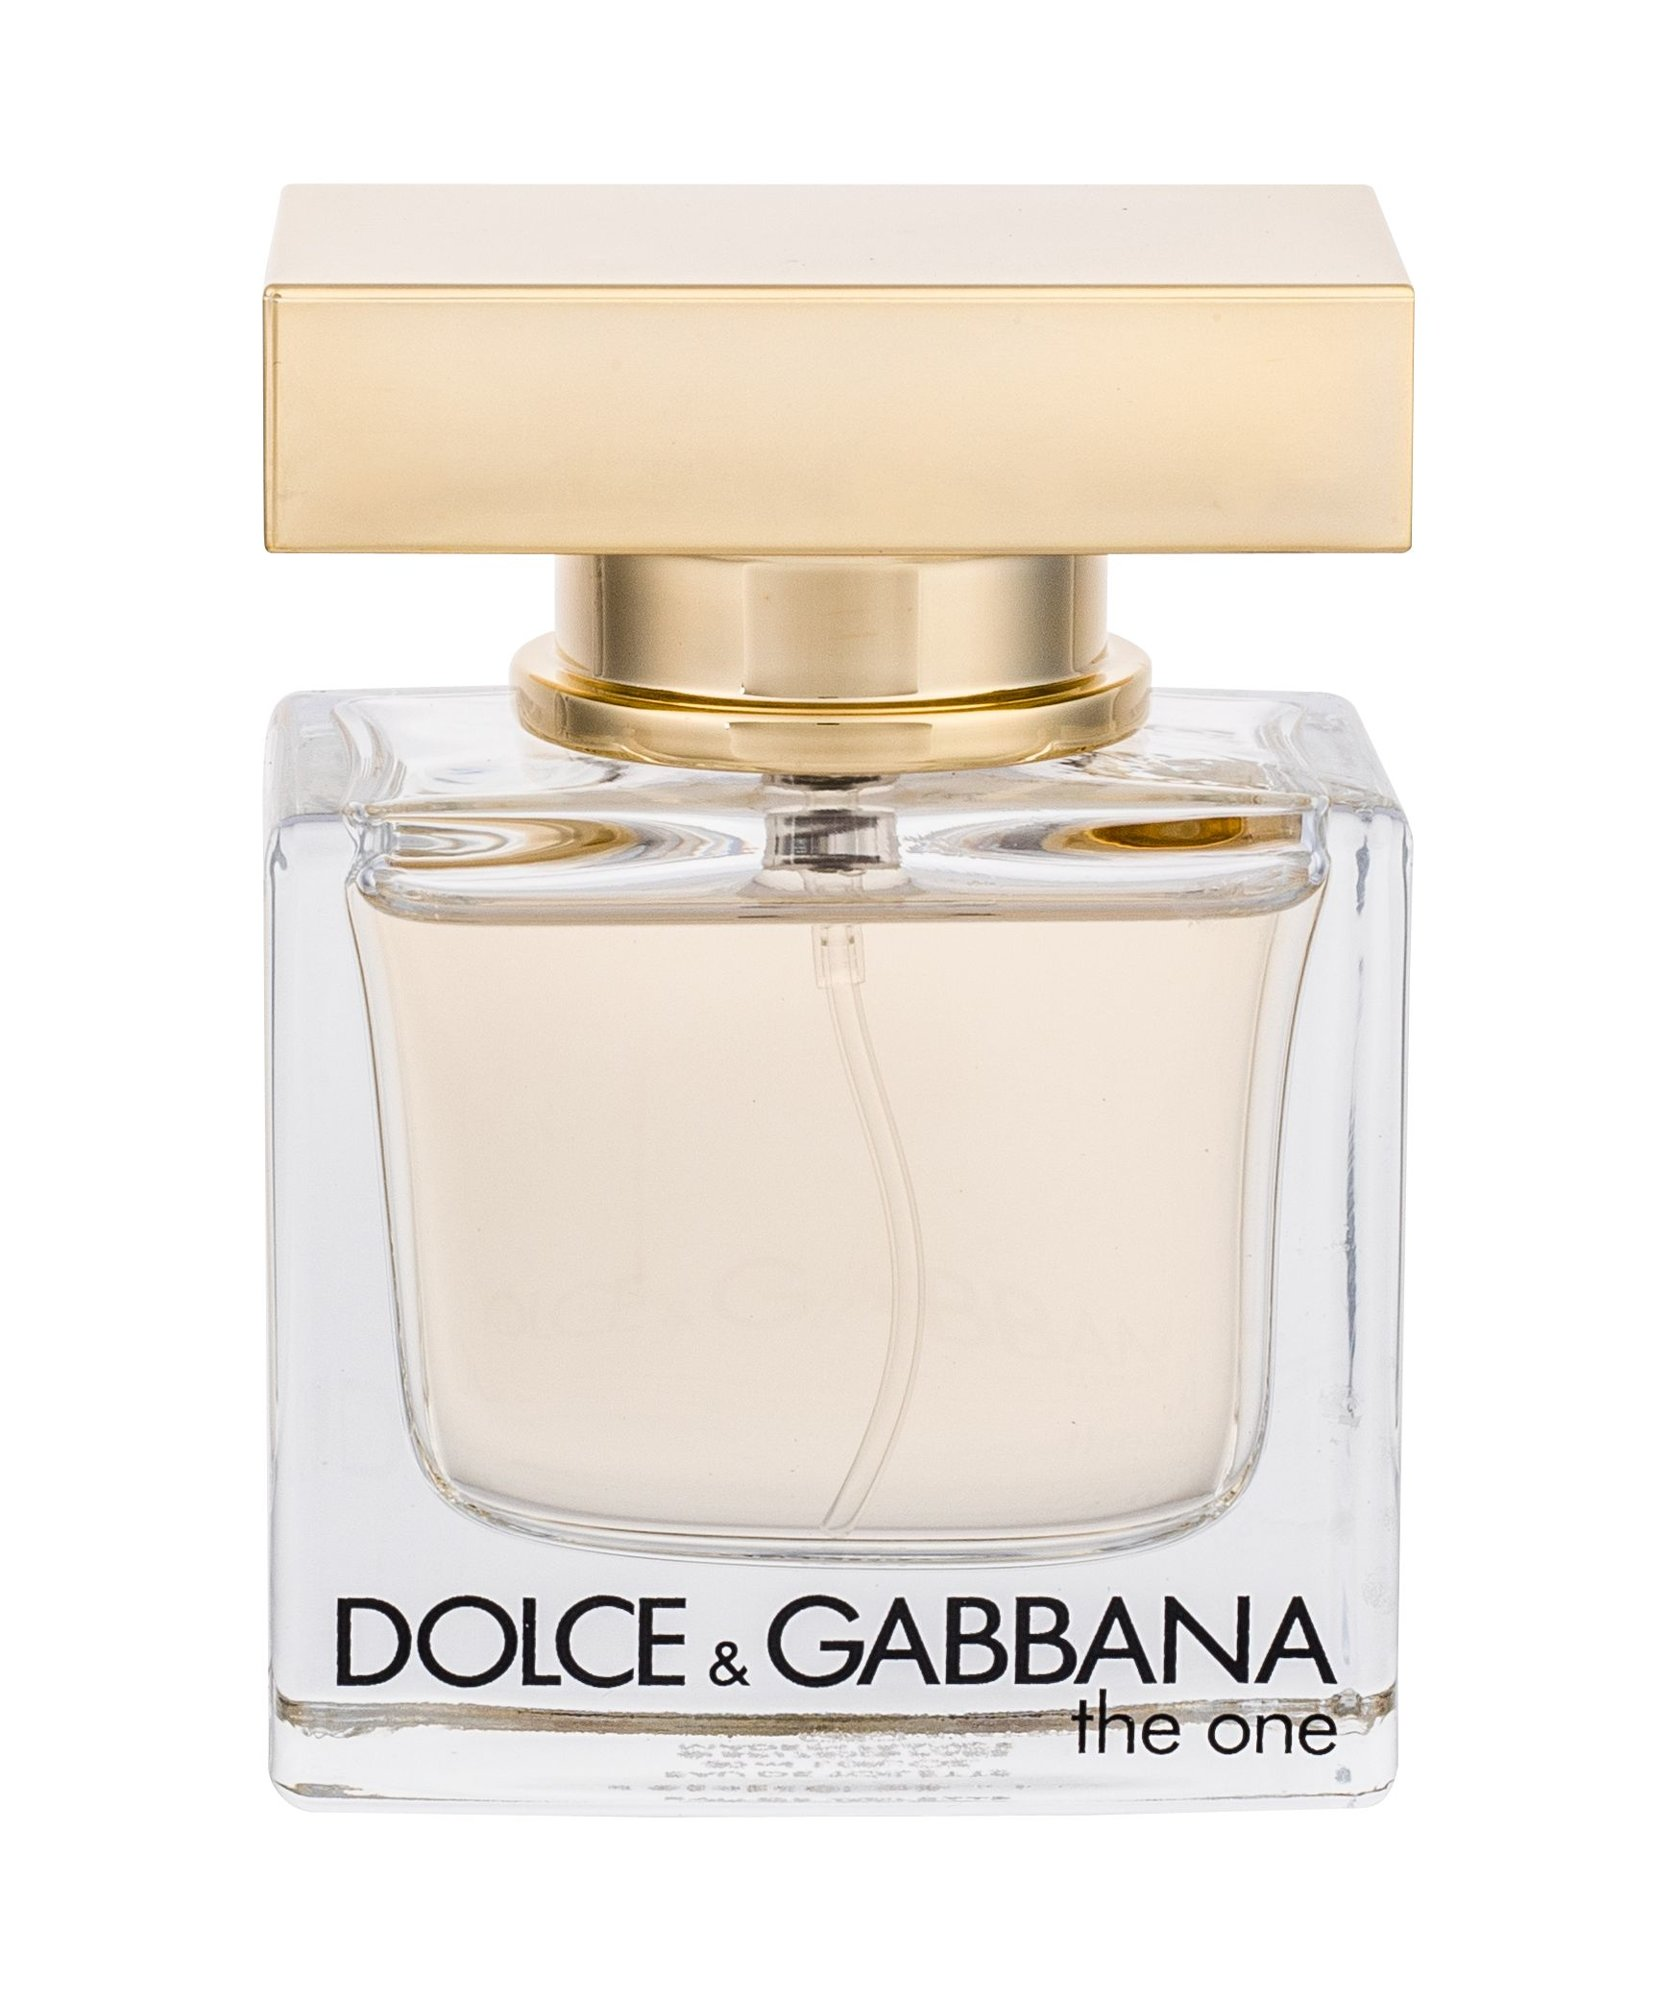 Dolce&Gabbana The One EDT 30ml